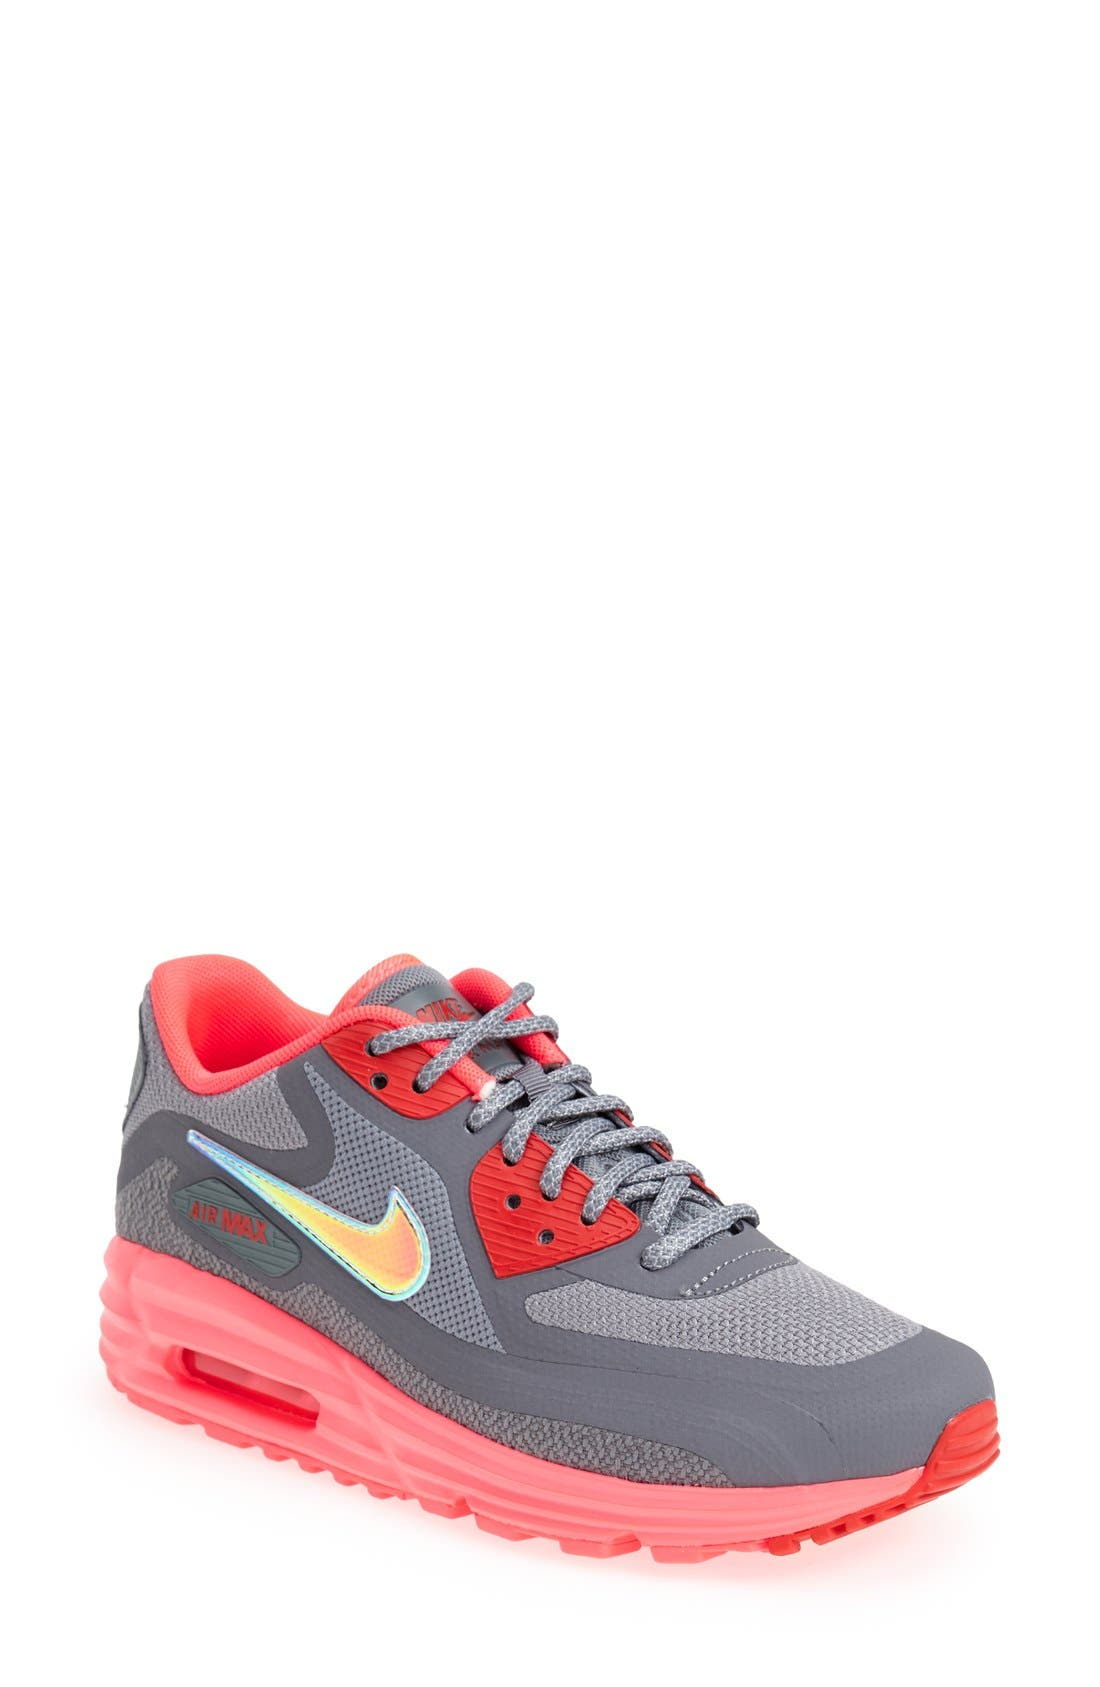 Alternate Image 1 Selected - Nike 'Air Max Lunar 90' Sneaker (Women)